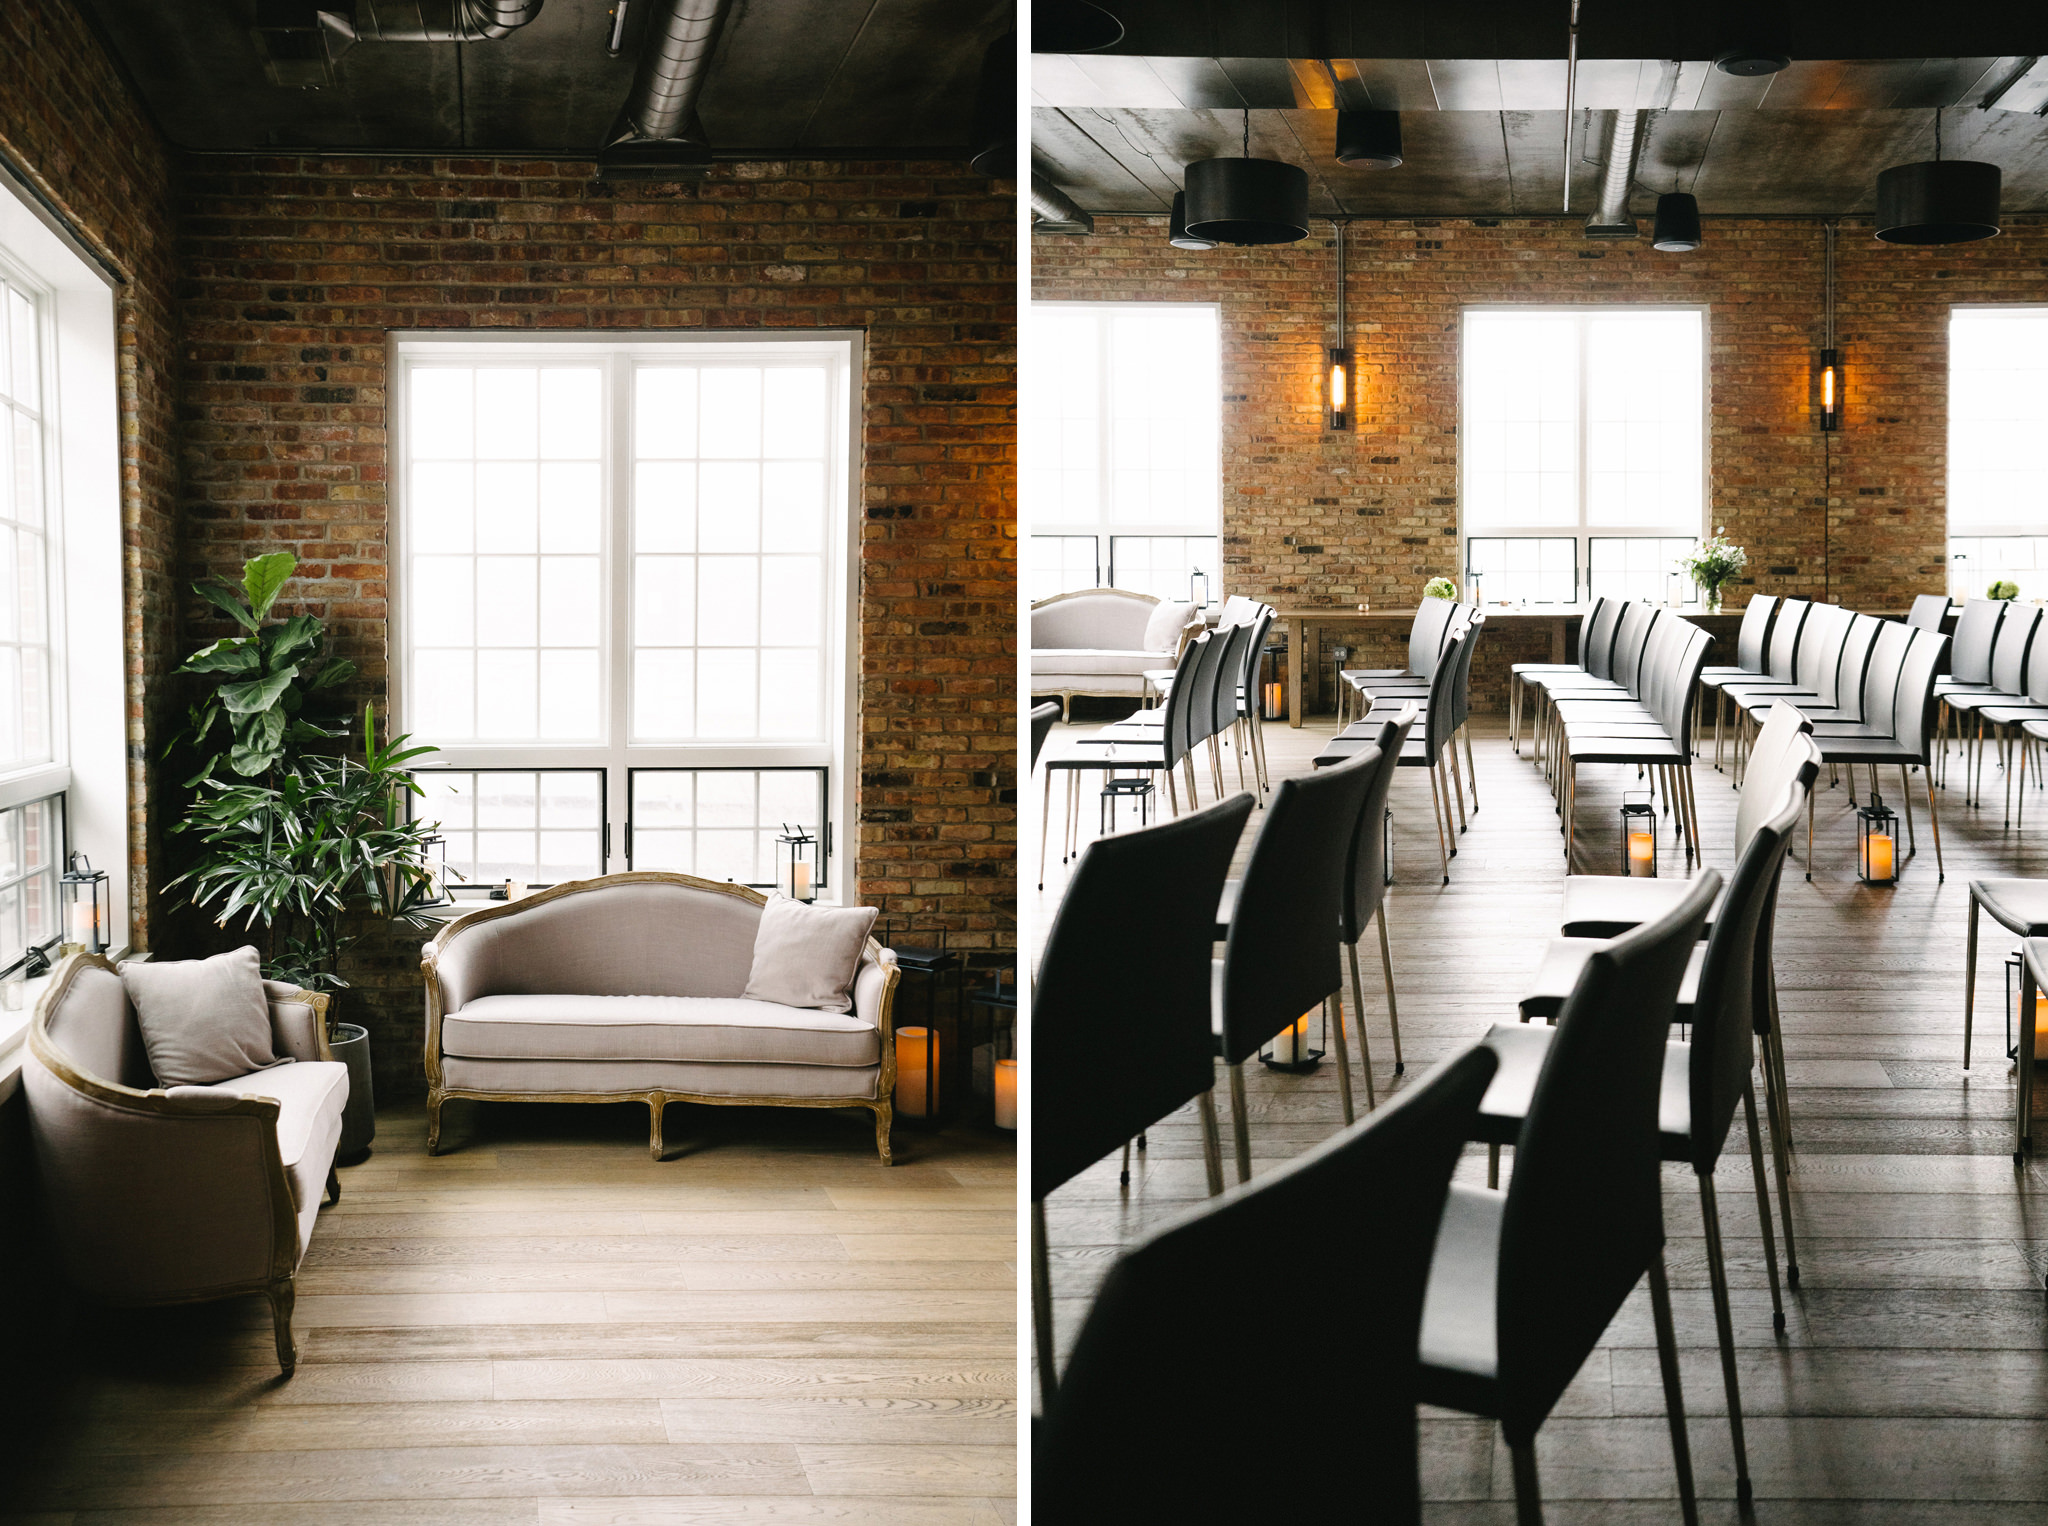 086-rempel-photography-chicago-wedding-inspiration-west-loop-fulton-market-caitlin-max-loft-lucia-venue-lindsey-marino-city-bbq-dana-hotel-and-spa.jpg